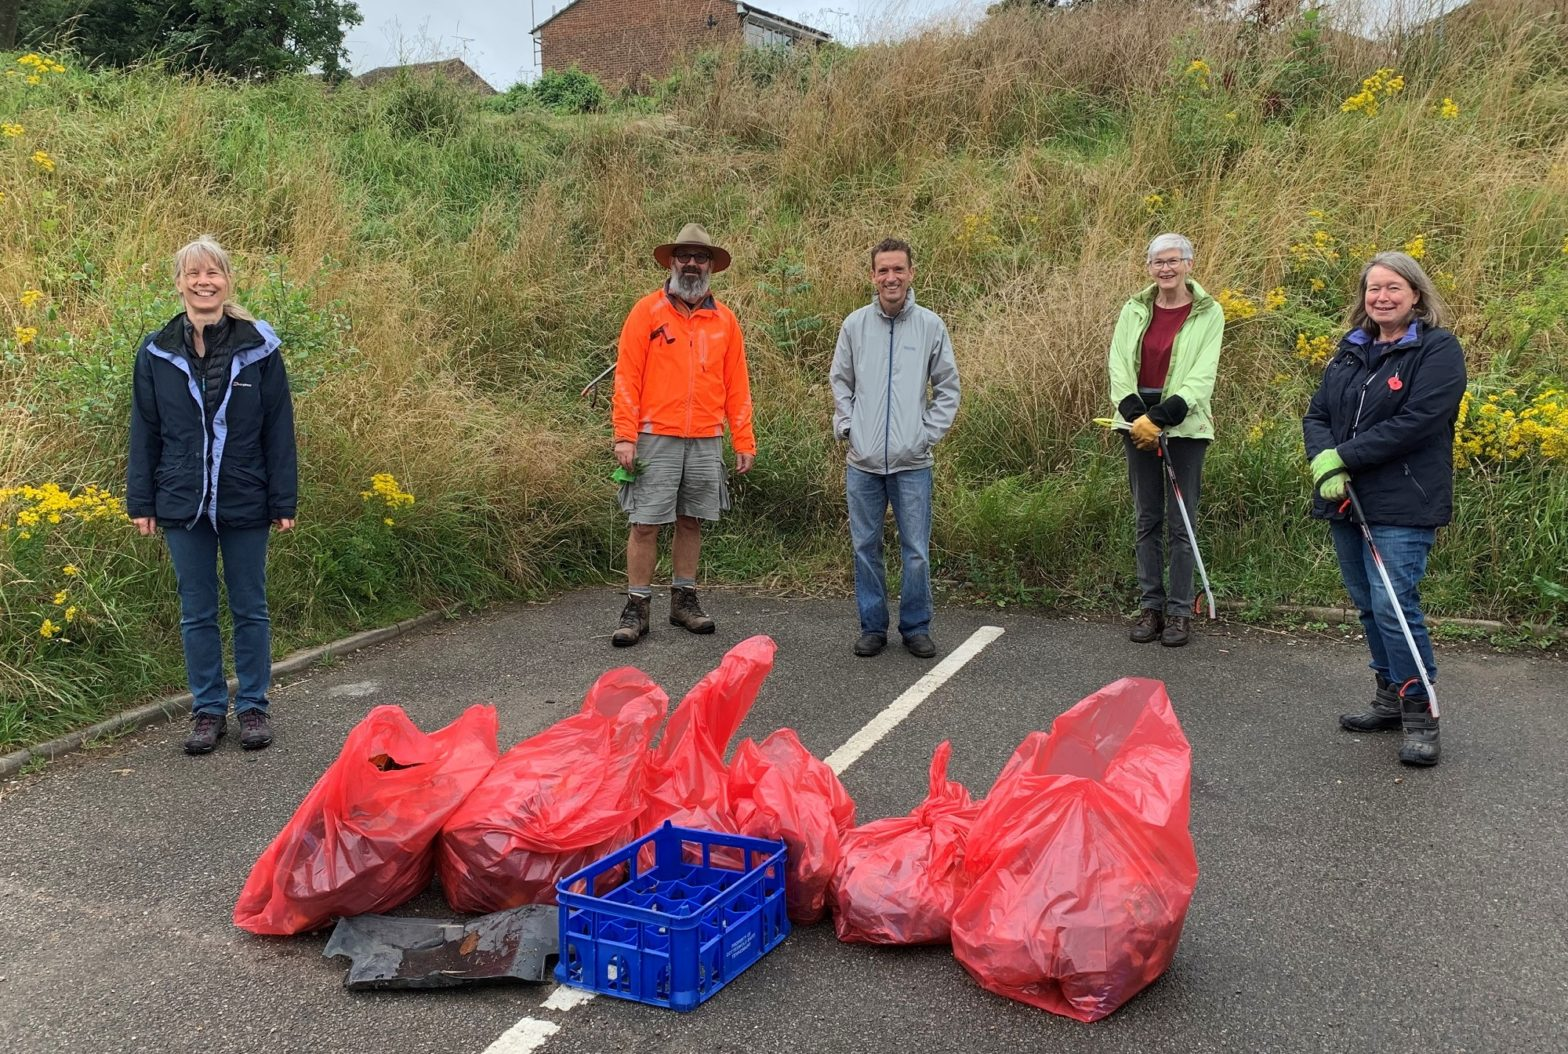 Litter pickers at LBLC